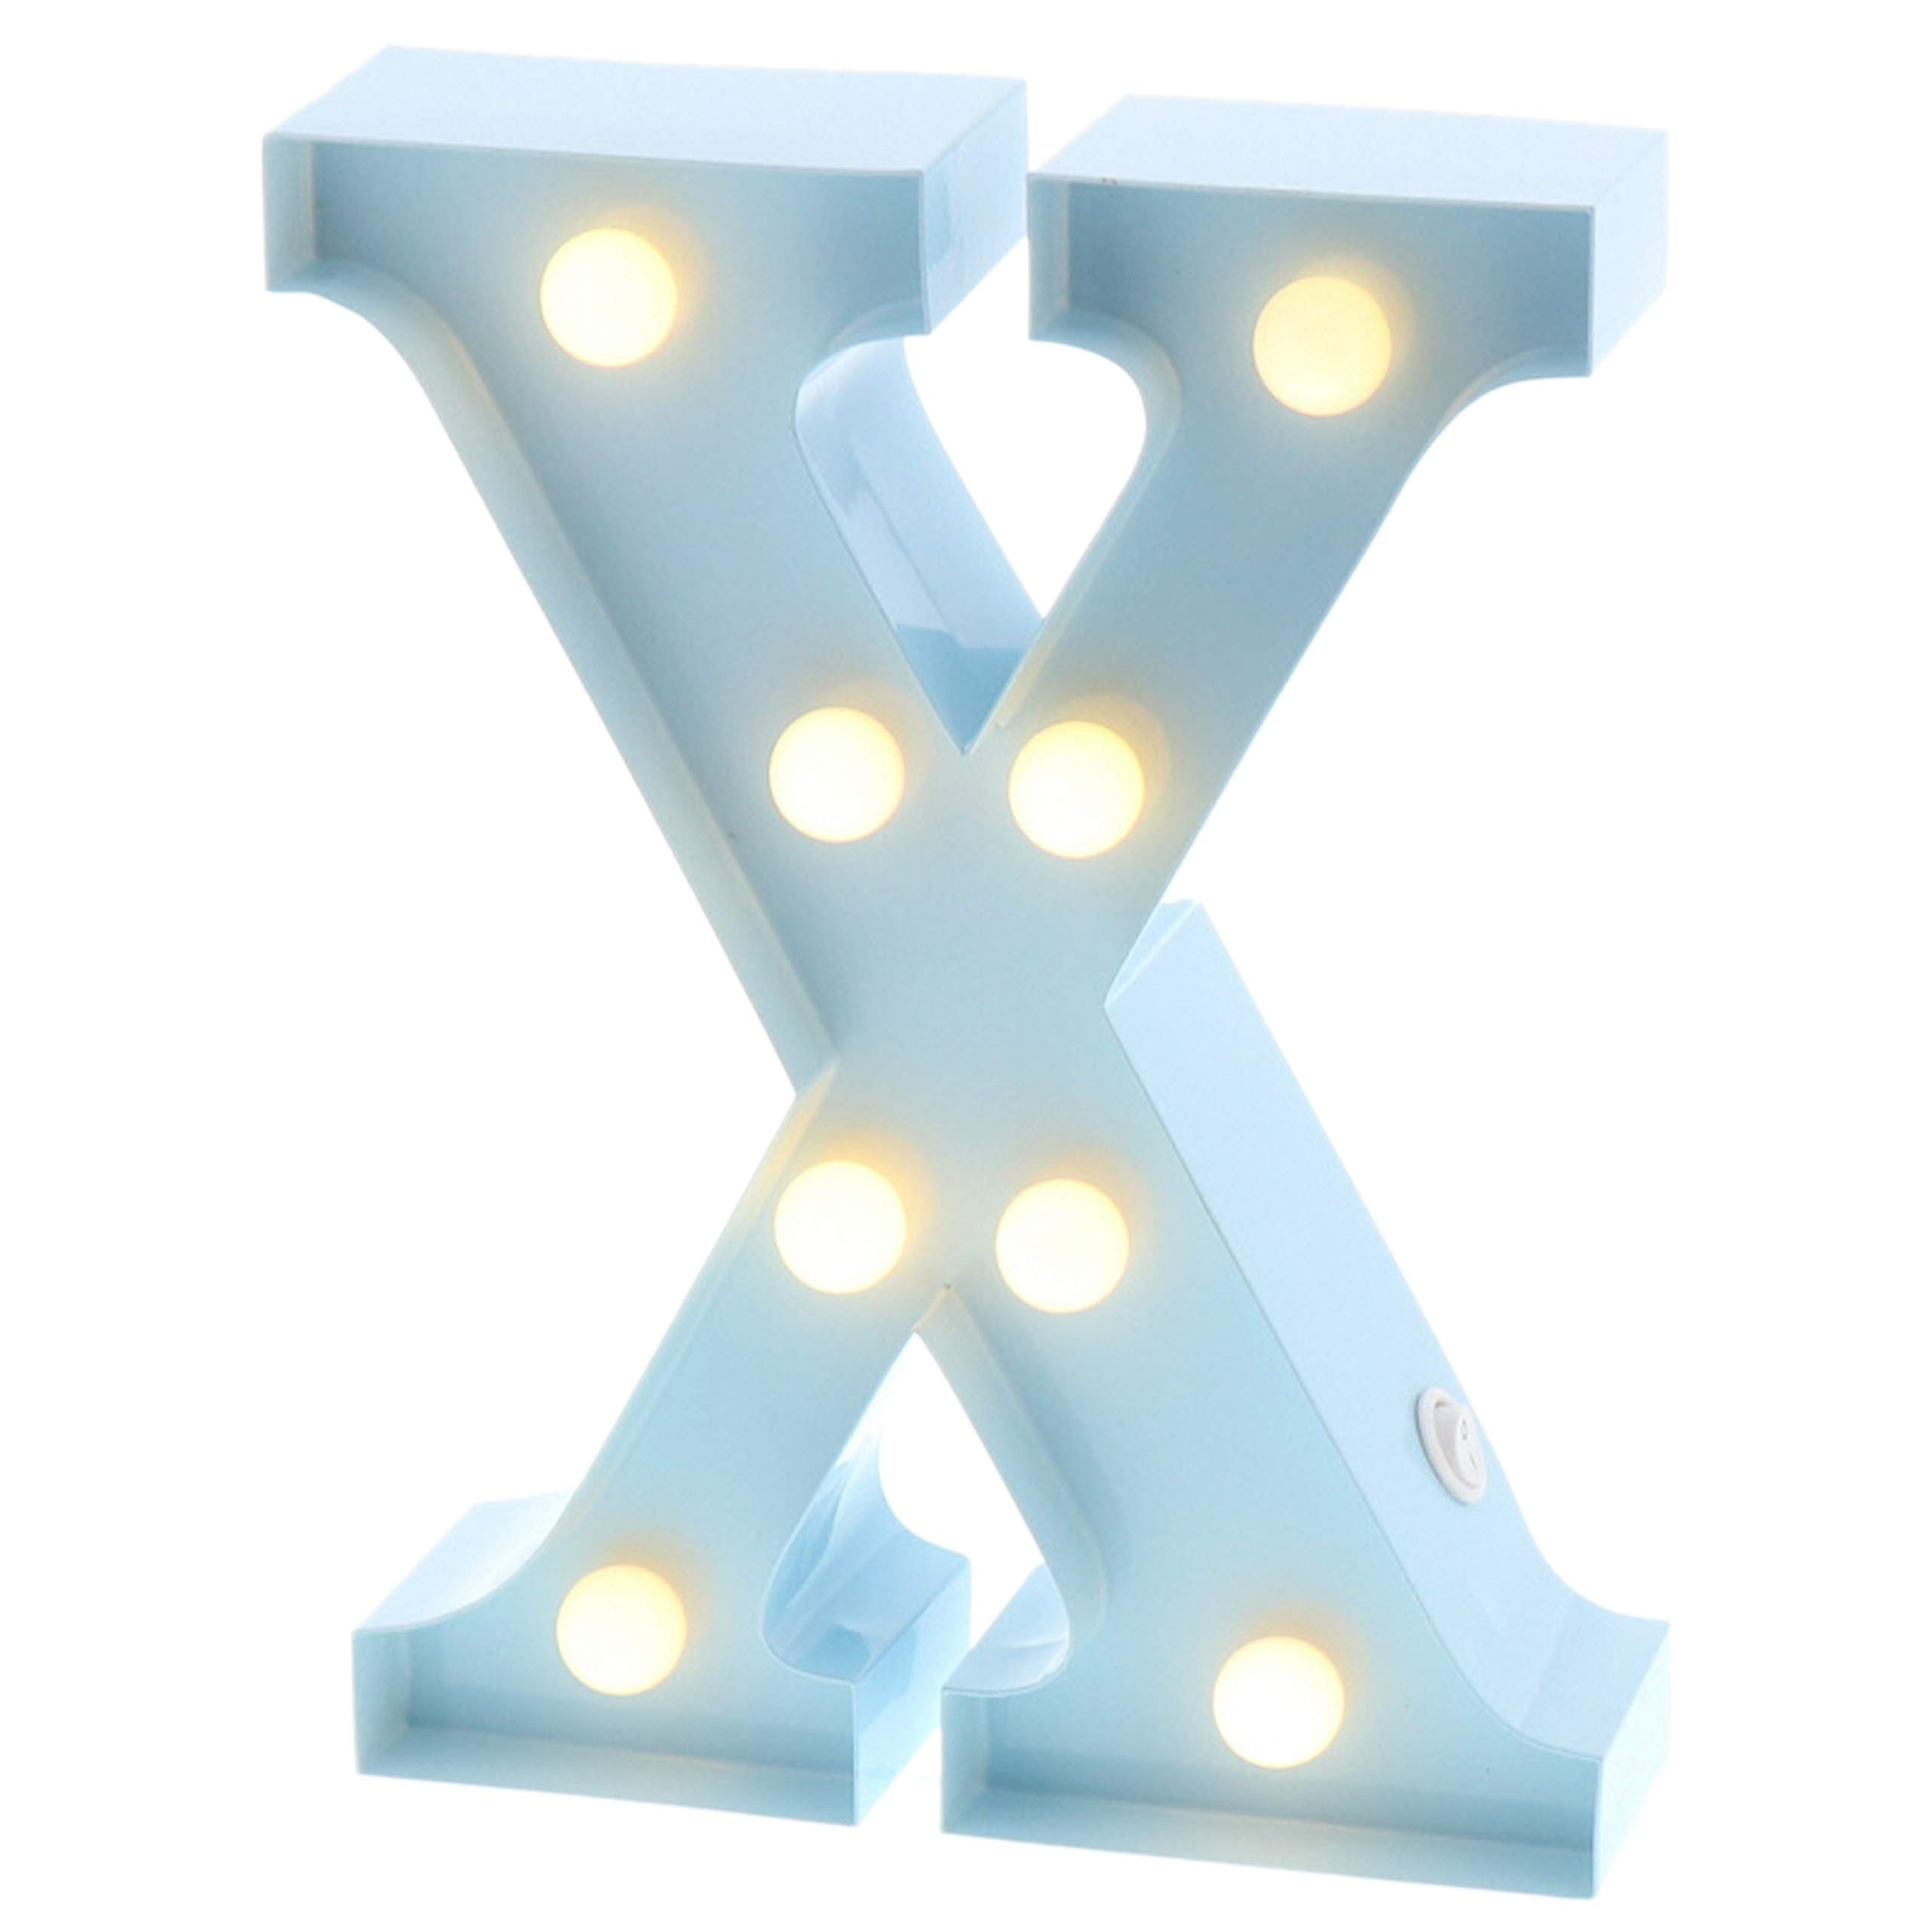 """Barnyard Designs Metal Marquee Letter X Light Up Wall Initial Nursery Letter, Home and Event Decoration 9"""" (Baby Blue)"""